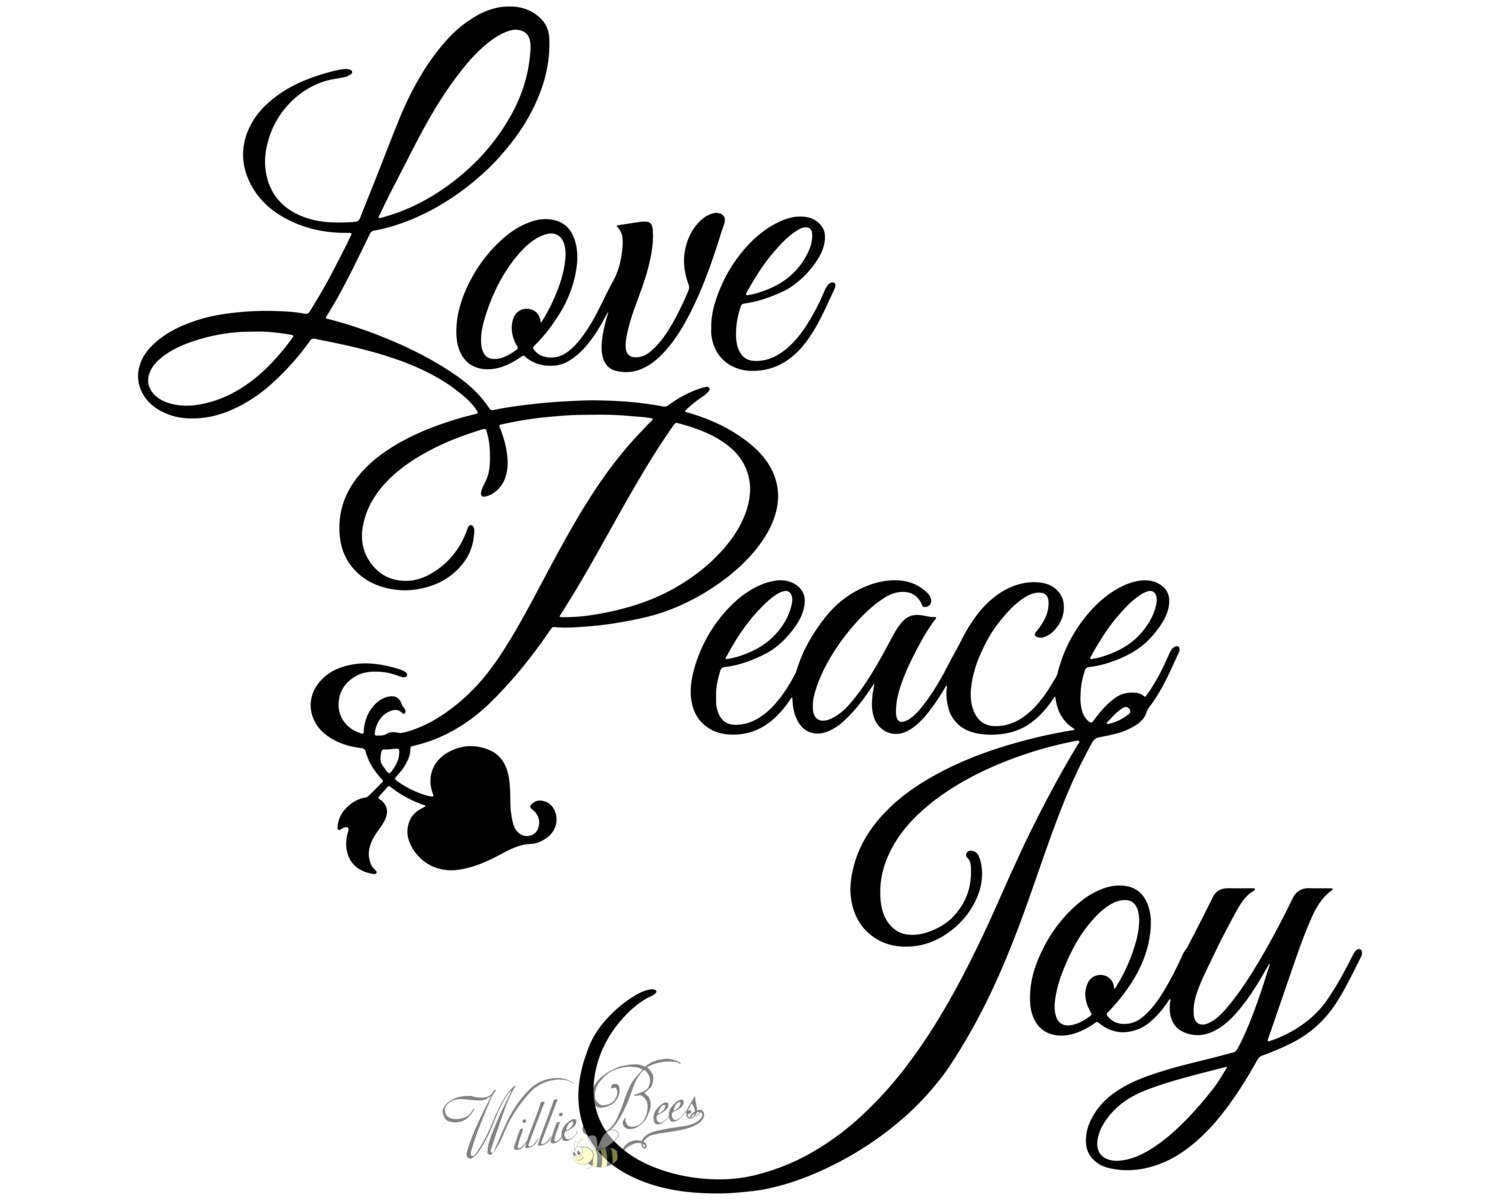 Peace Love Joy Quotes Peace Love Joy Silhouette Words Wall Art Letters Heart